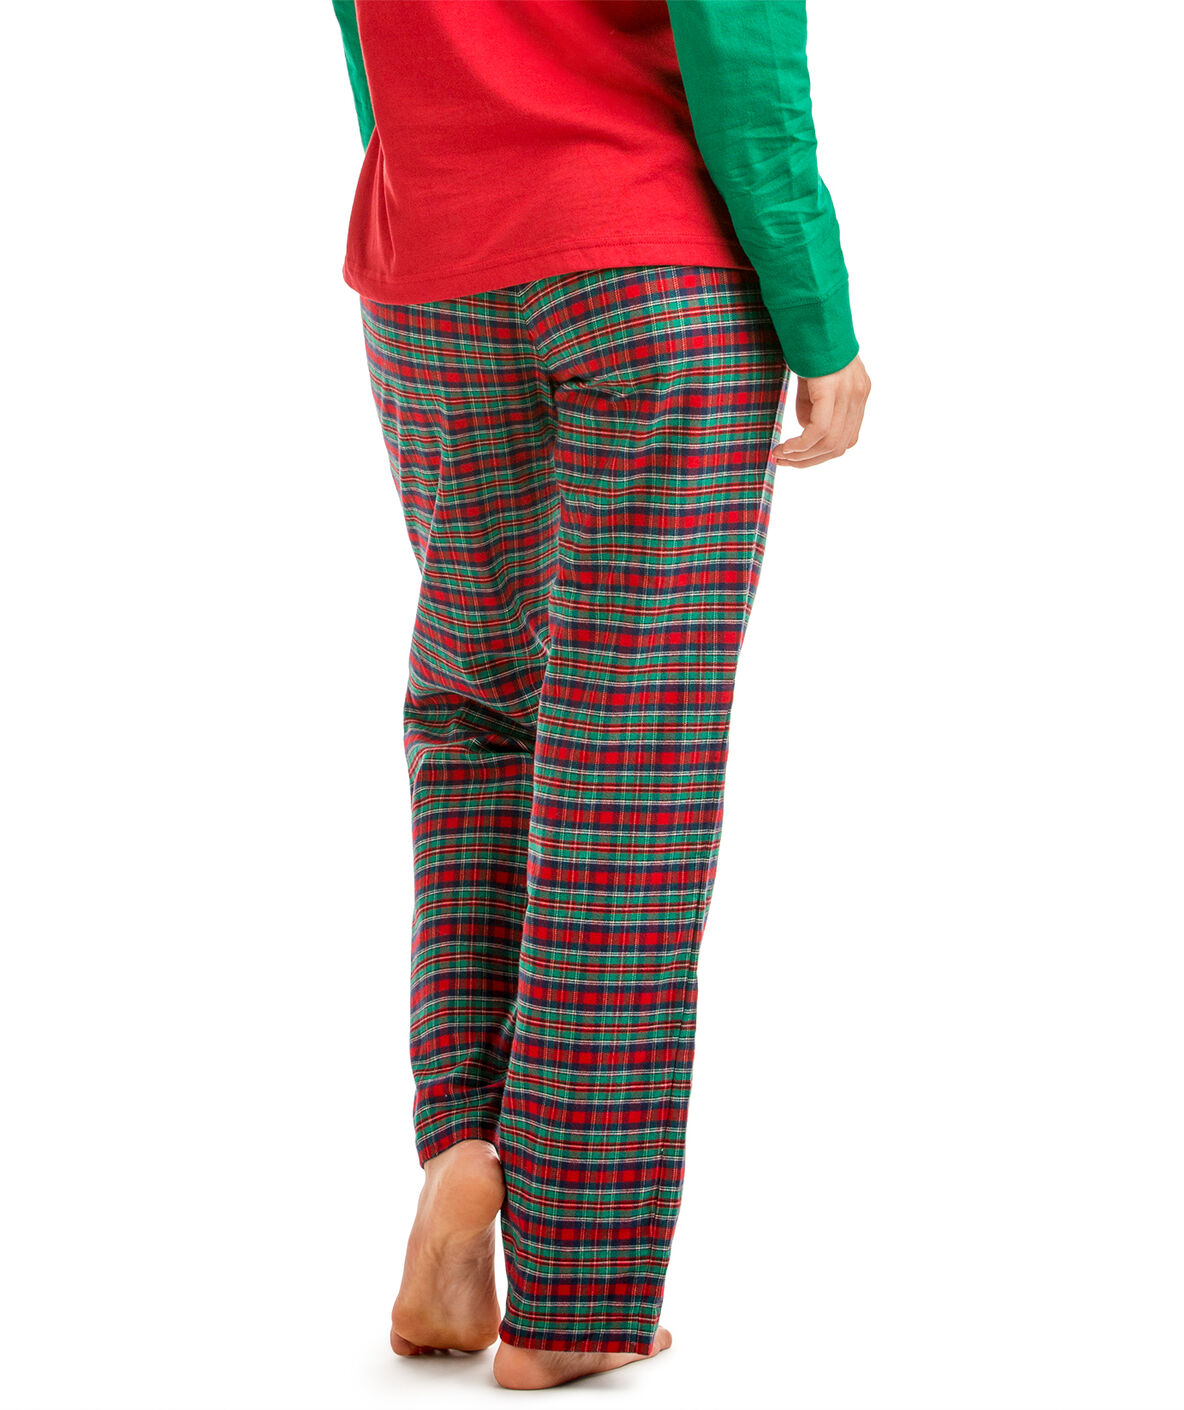 e117781d5f Holiday Plaid Flannel Lounge Pants. Zoom In